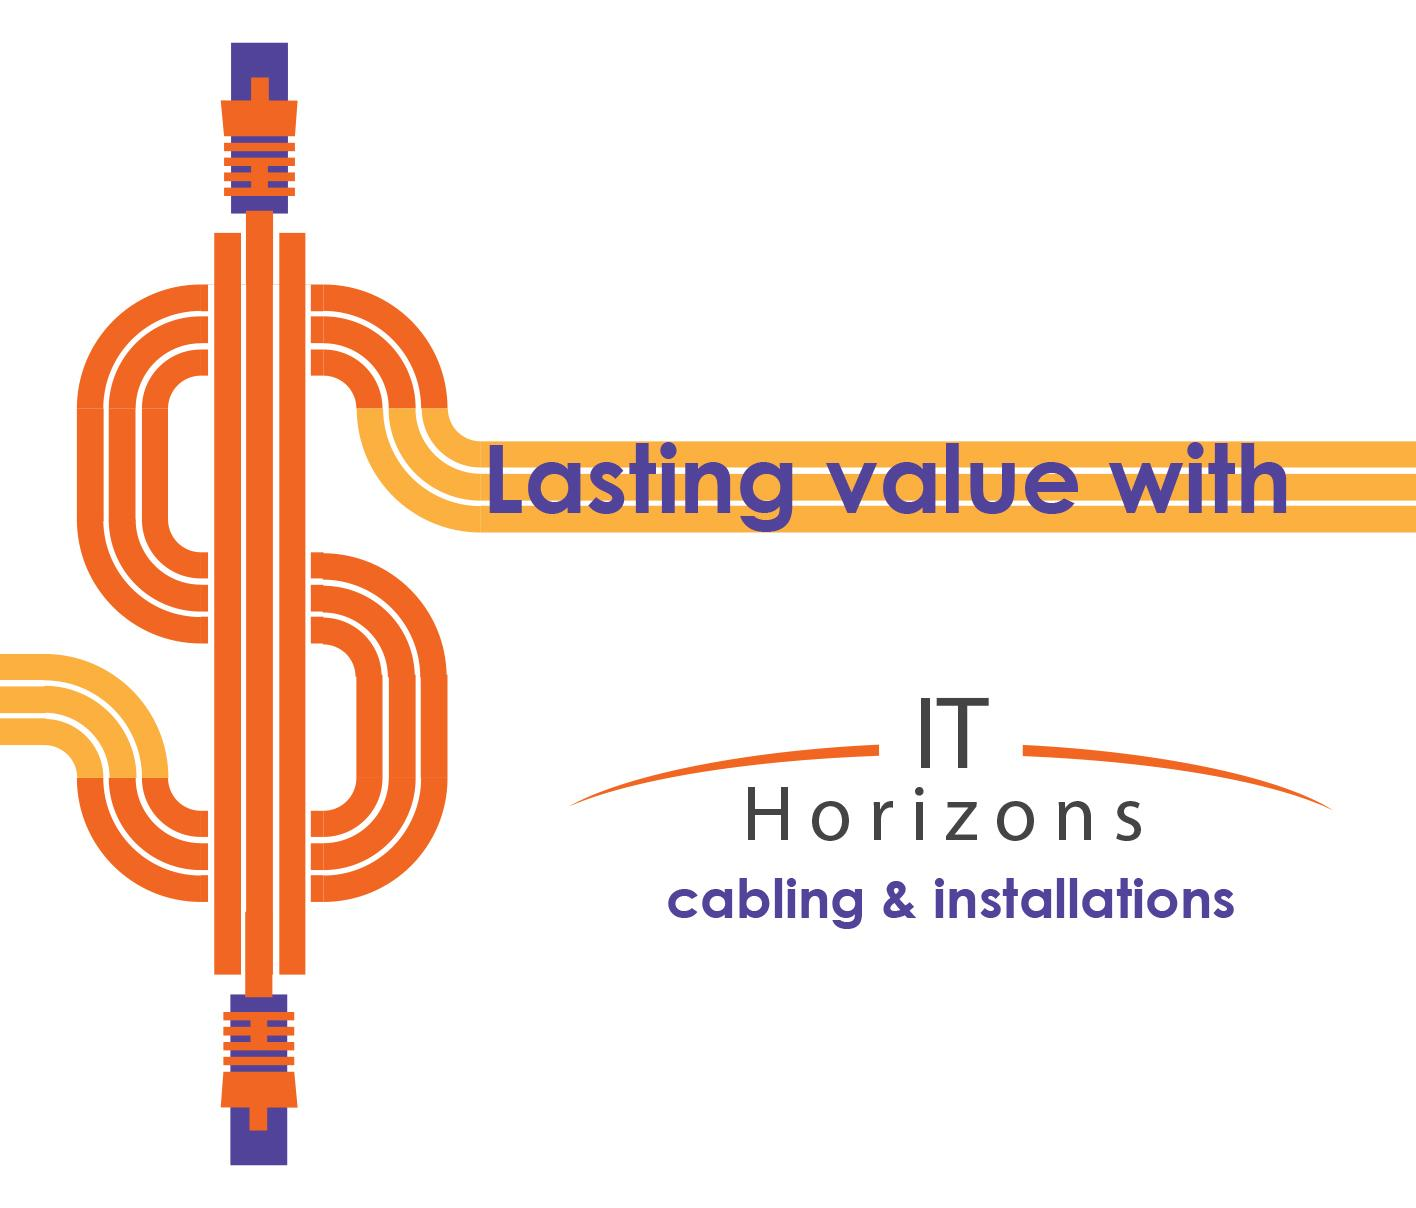 Planning Your Cabling & Physical Installations: The IT Horizons Difference